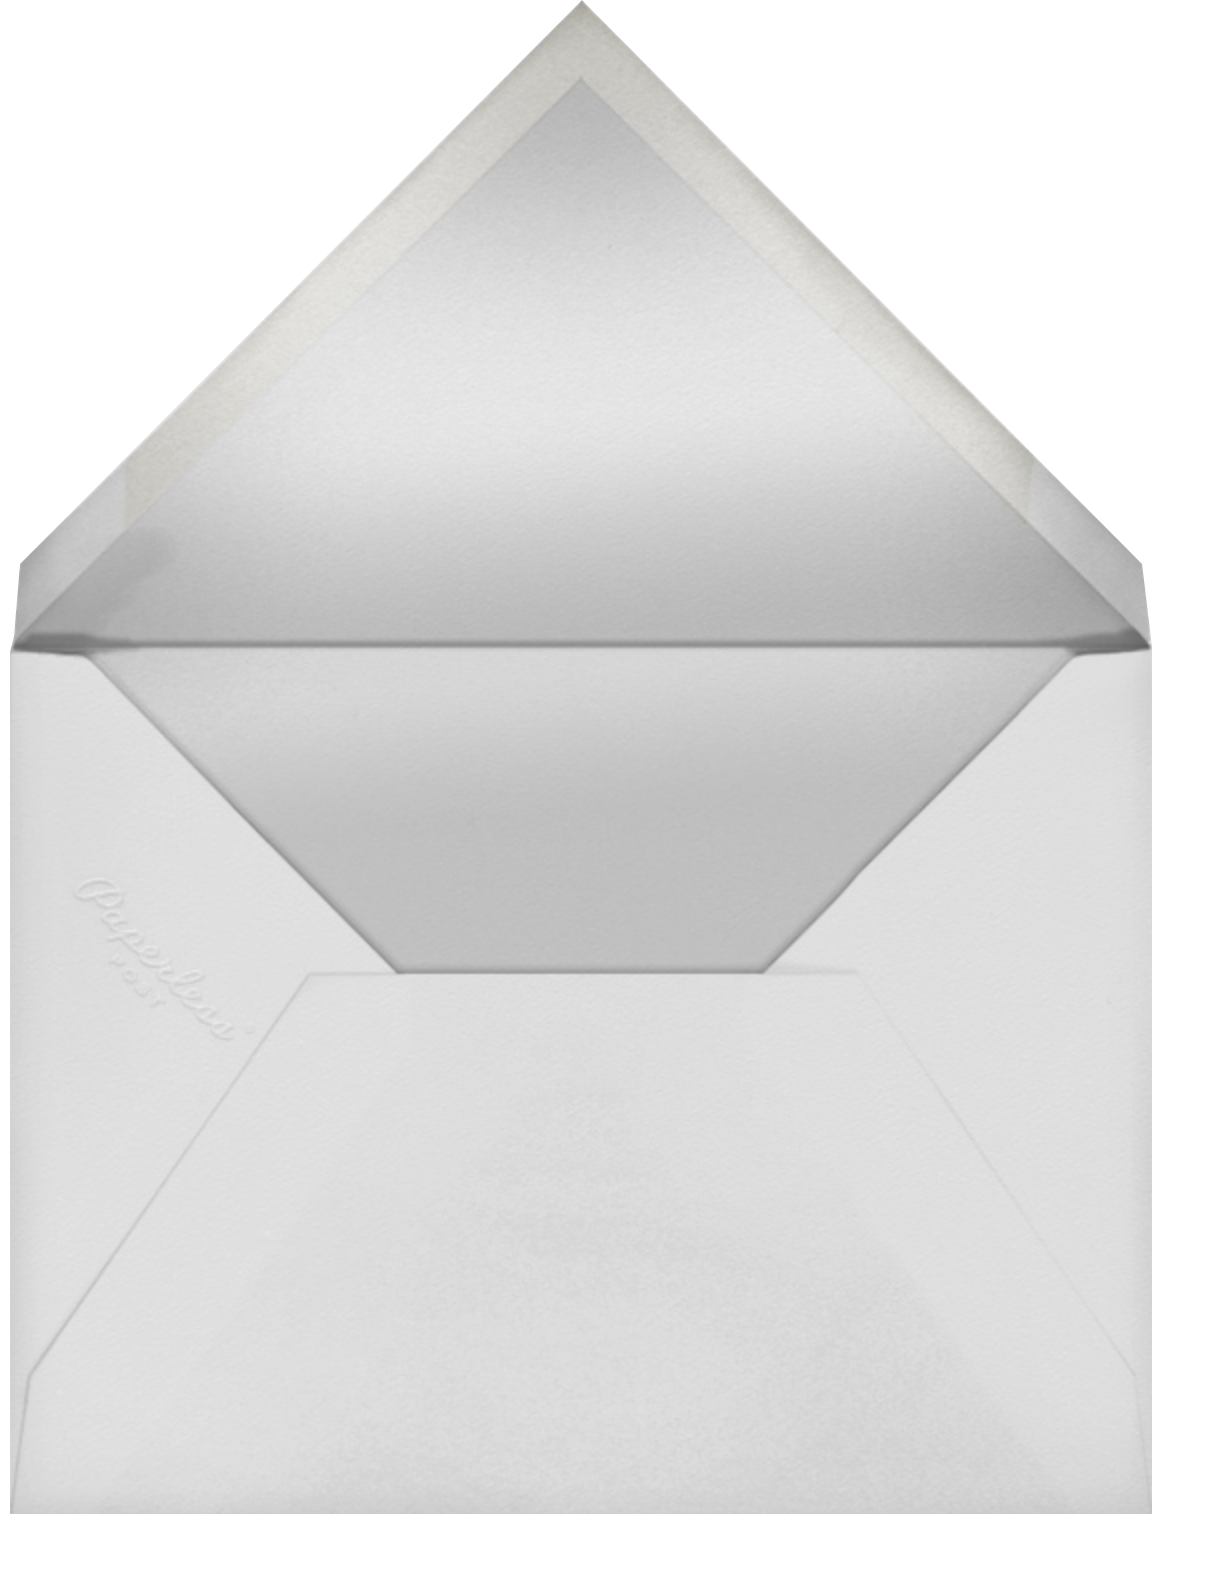 Fire Extinguisher - Paperless Post - Just because - envelope back